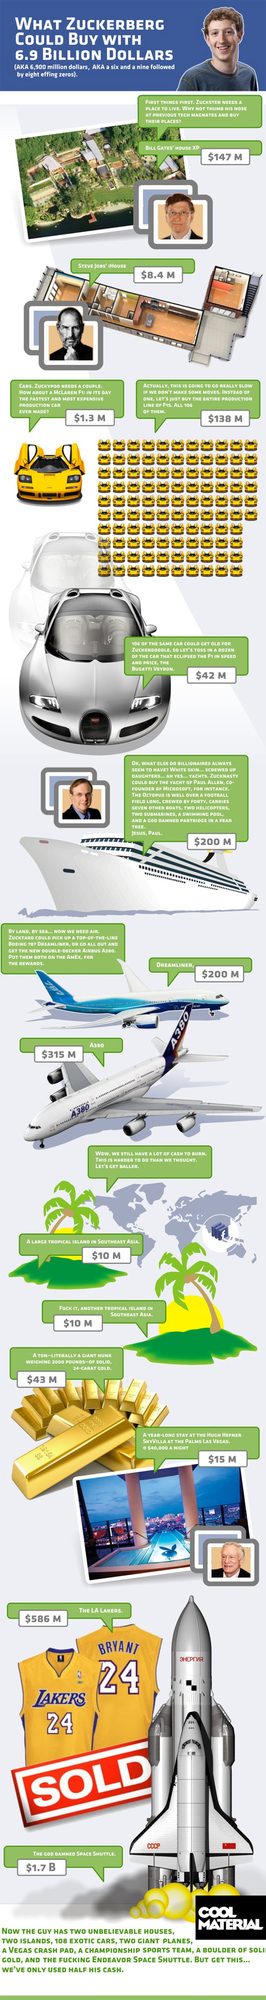 What Zuckerberg Could Buy With 6.9 Billion Dollar